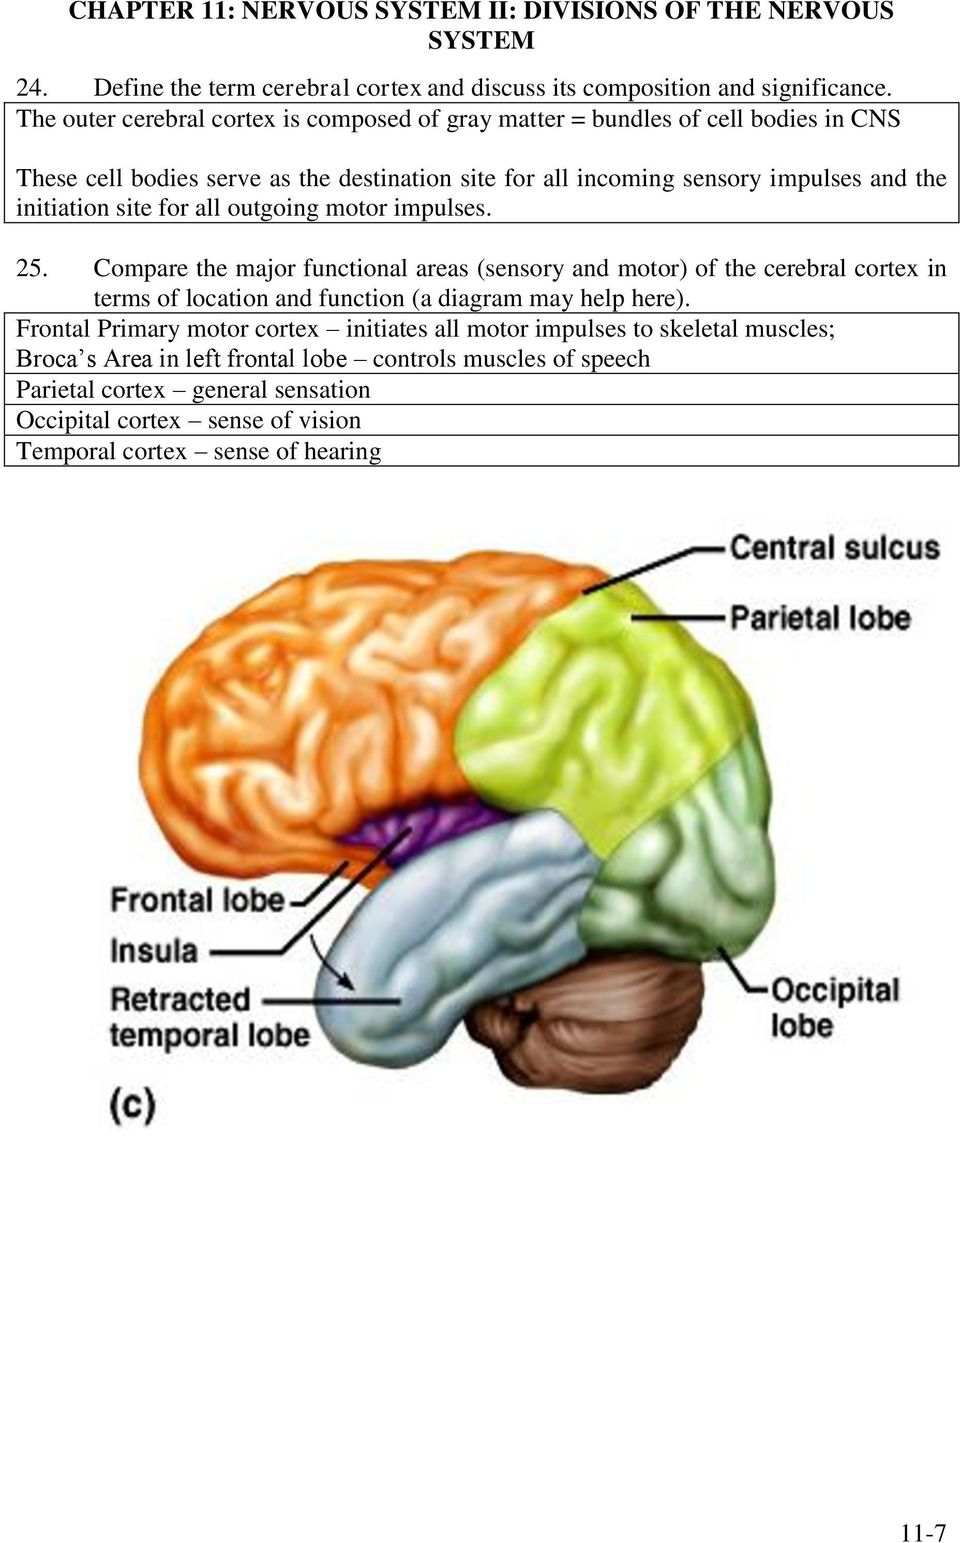 site for all outgoing motor impulses. 25. Compare the major functional areas (sensory and motor) of the cerebral cortex in terms of location and function (a diagram may help here).